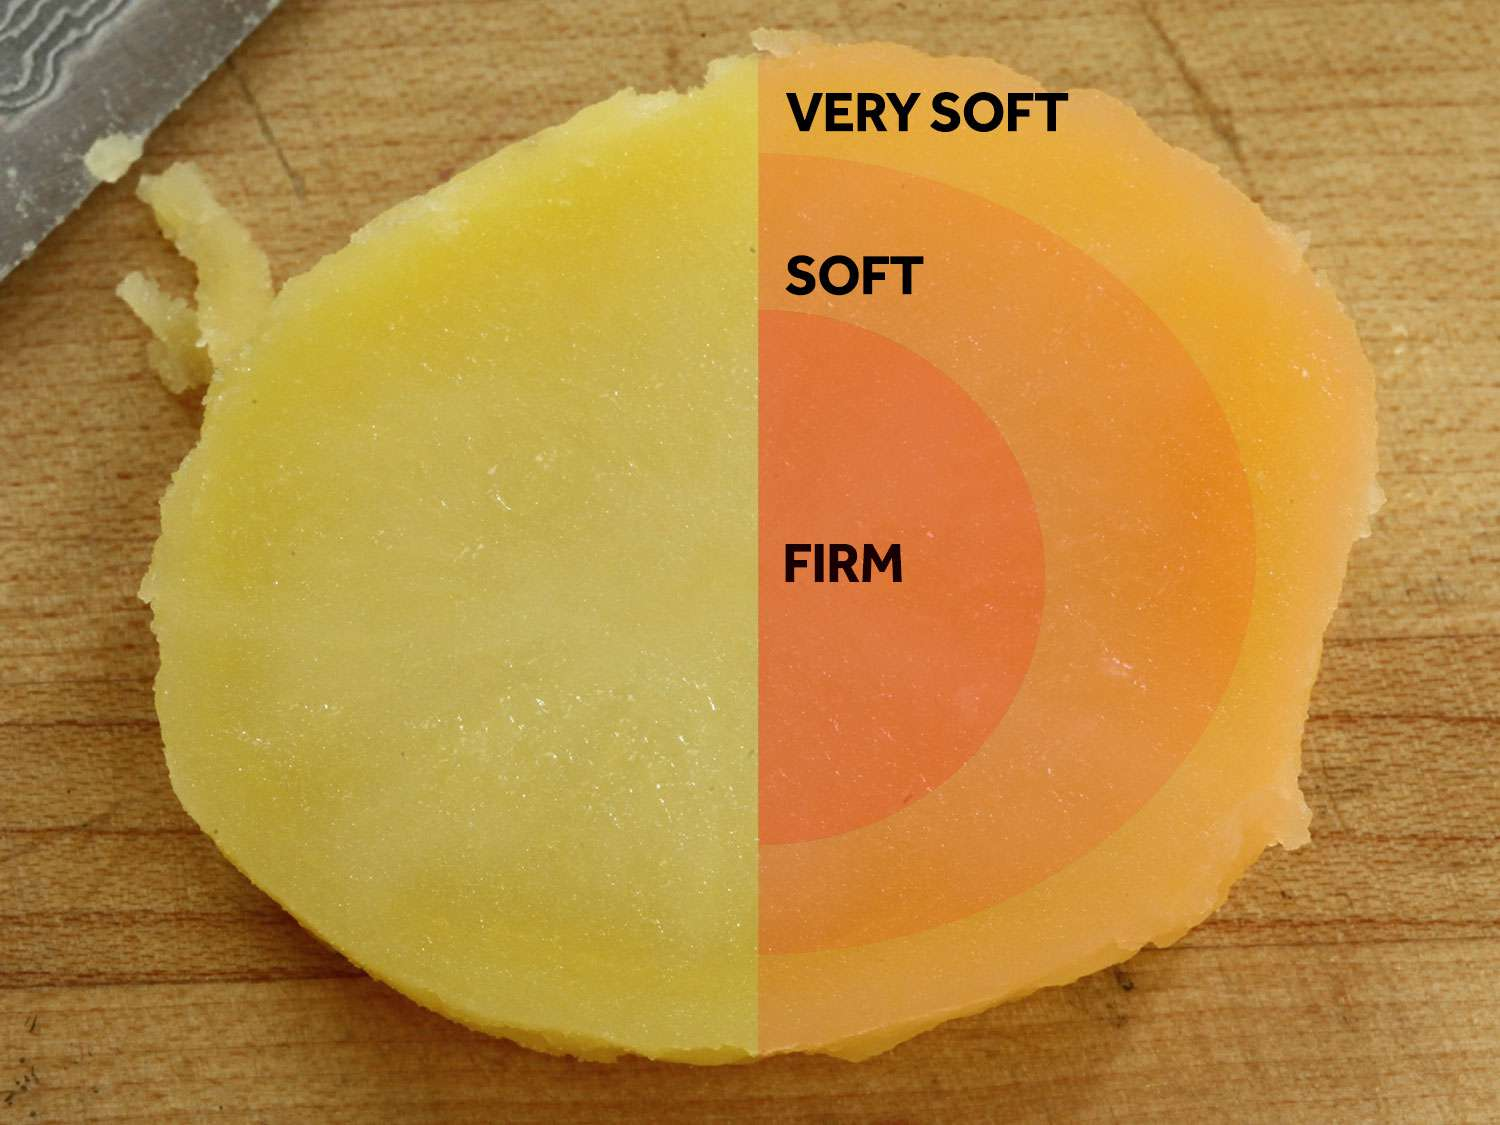 Levels of doneness for cooking potato